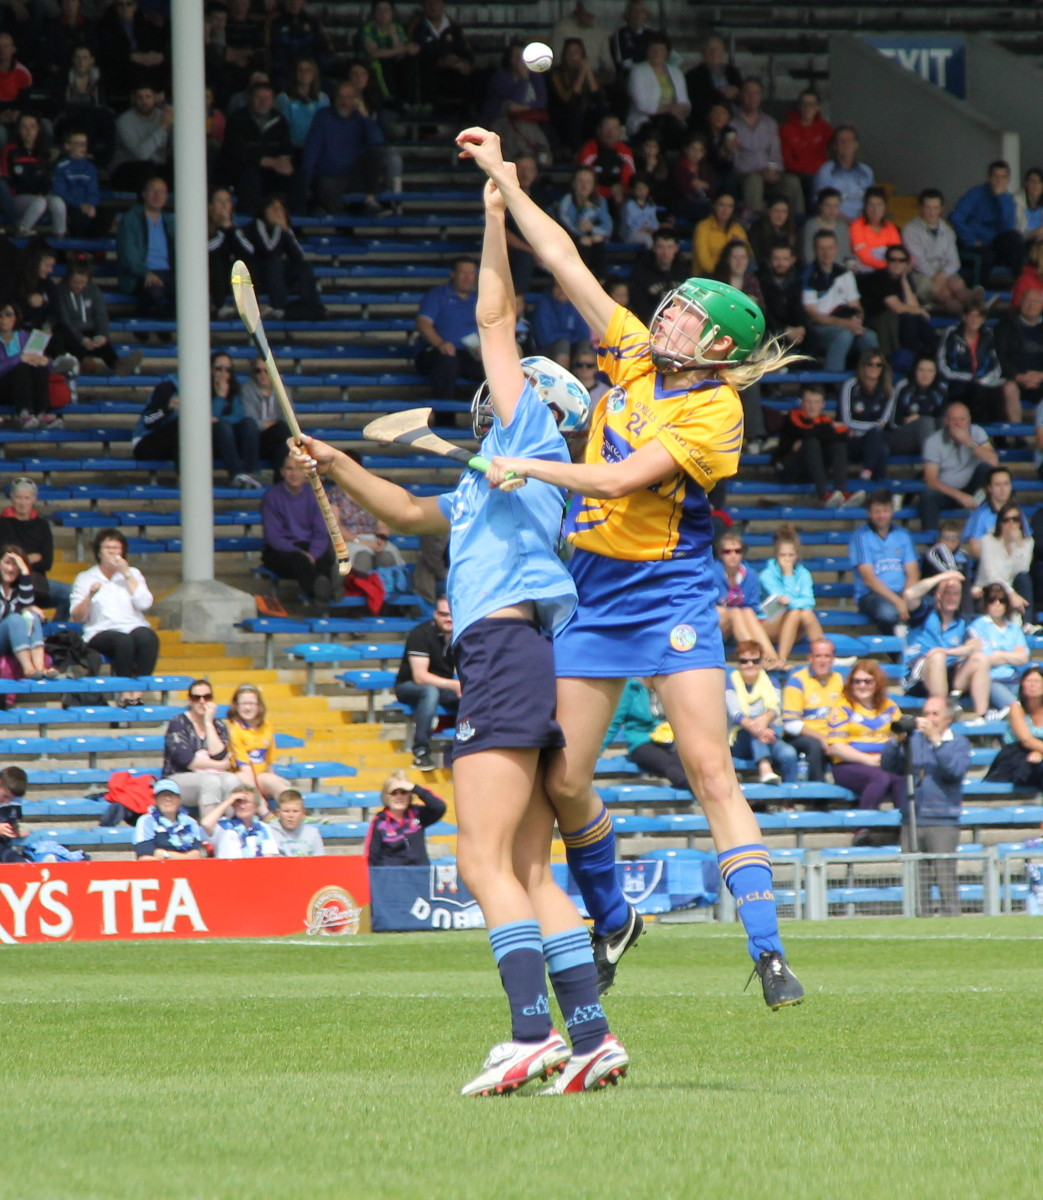 CE DUB Clares Emma O'Driscoll & Dublins Alison Maguire tussle for a dropping ball.